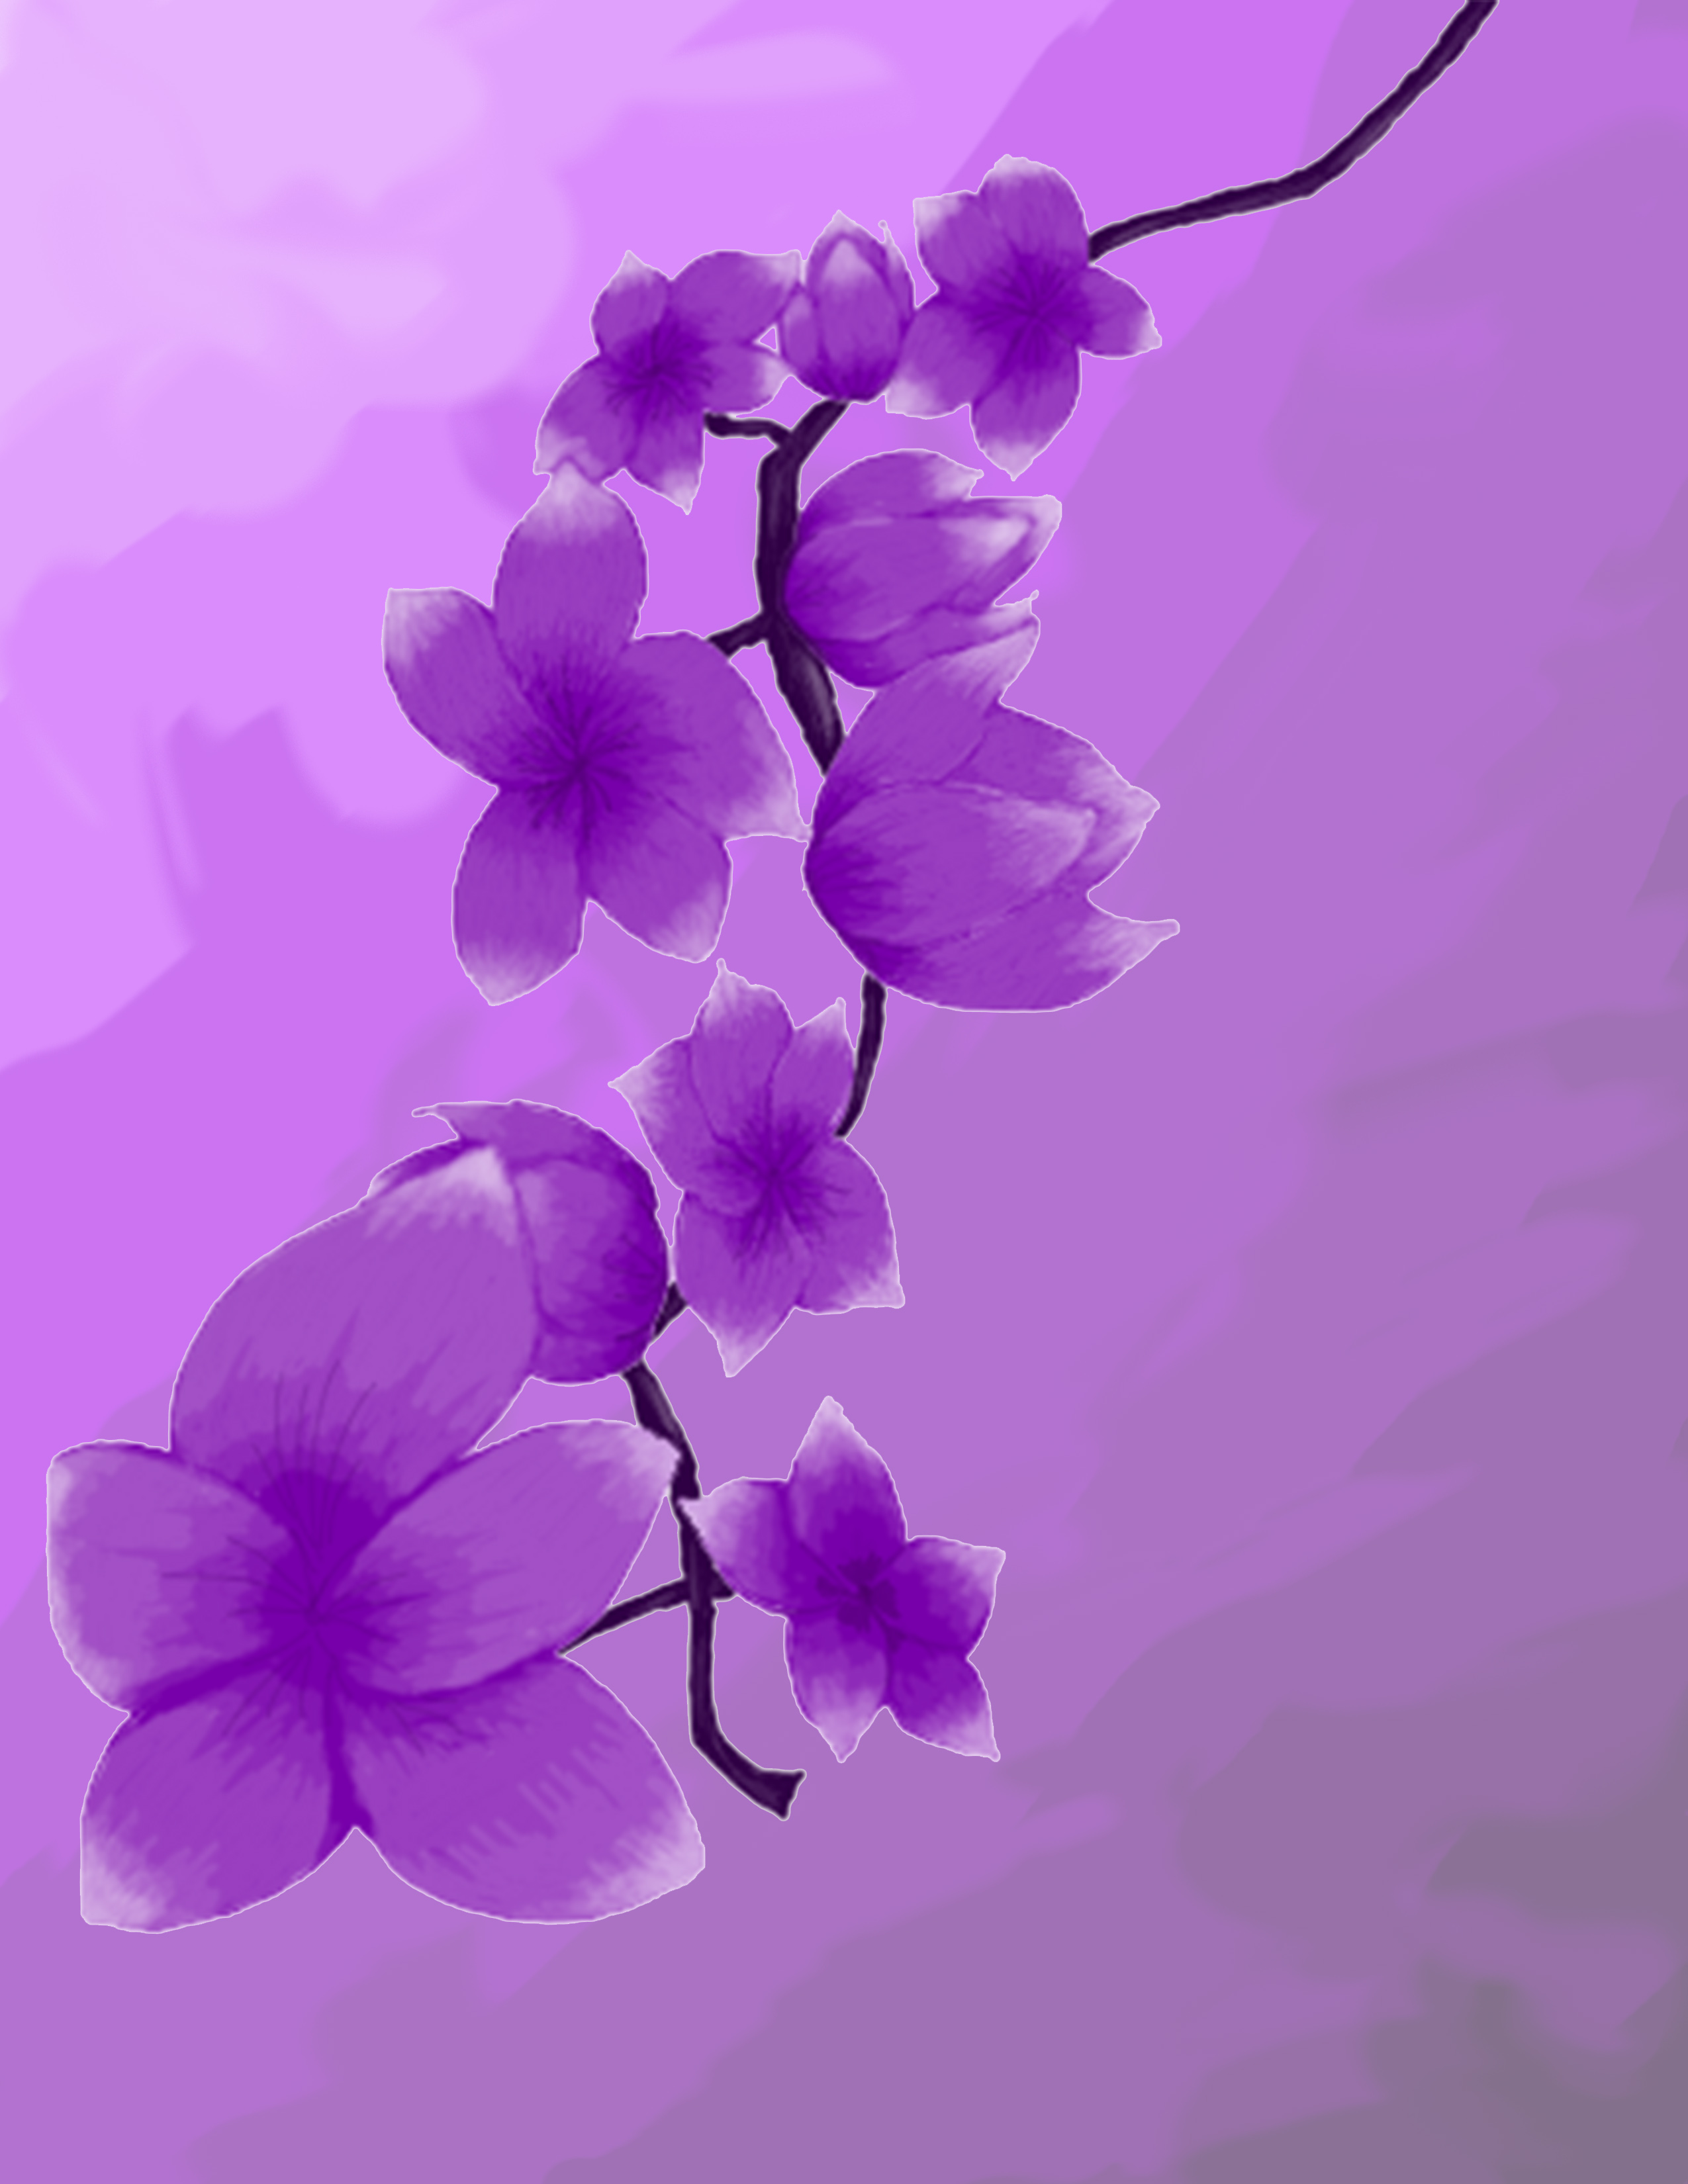 Violet Flowers from Mr. Wilson